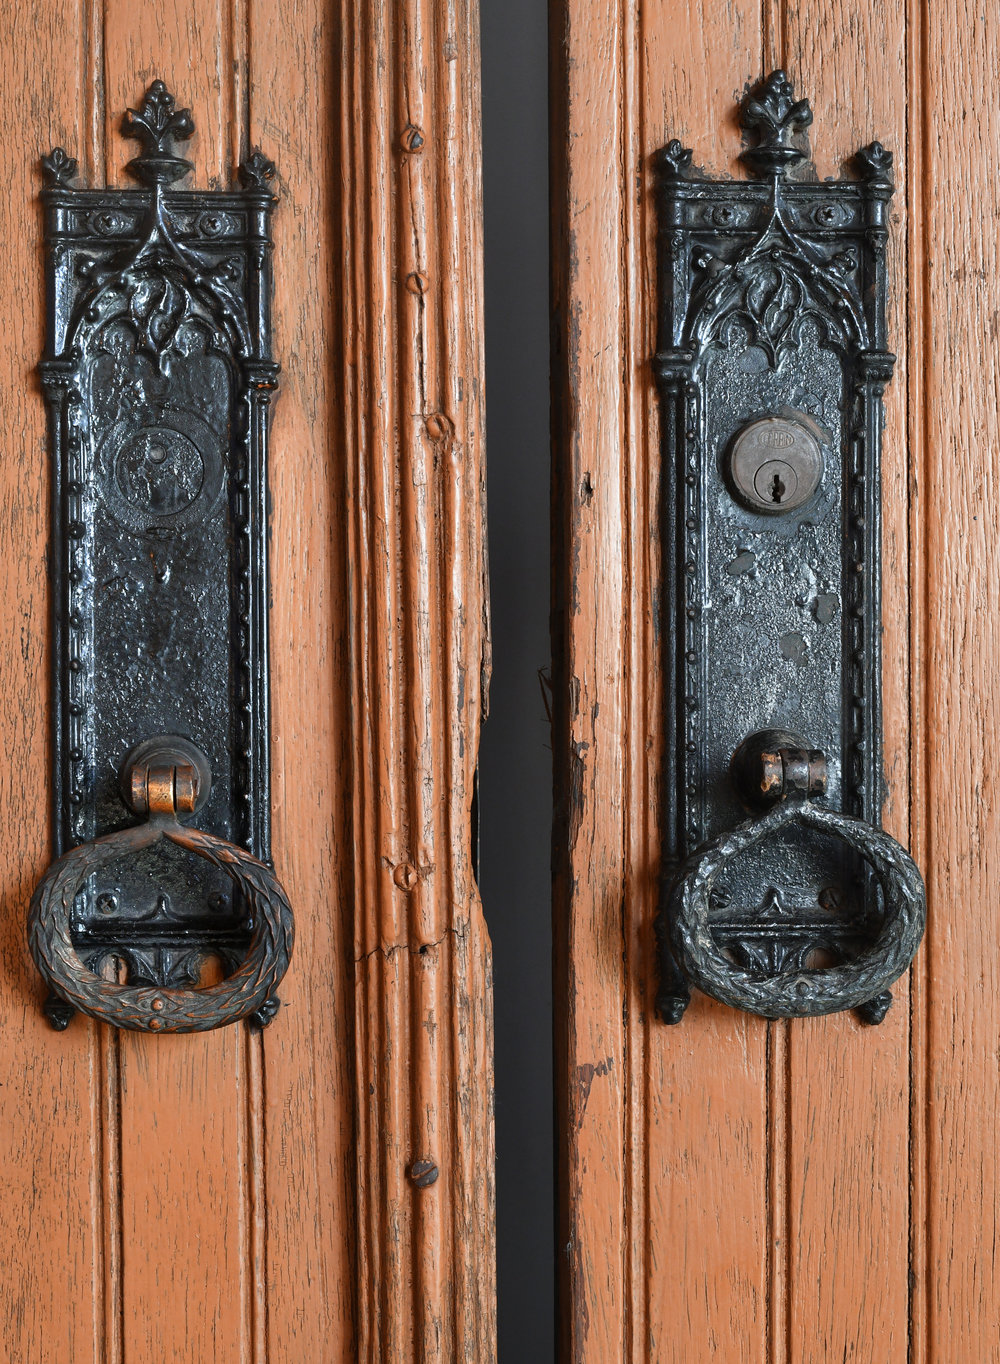 47742-double-doors-with-strap-hinges-hardware-detail.jpg